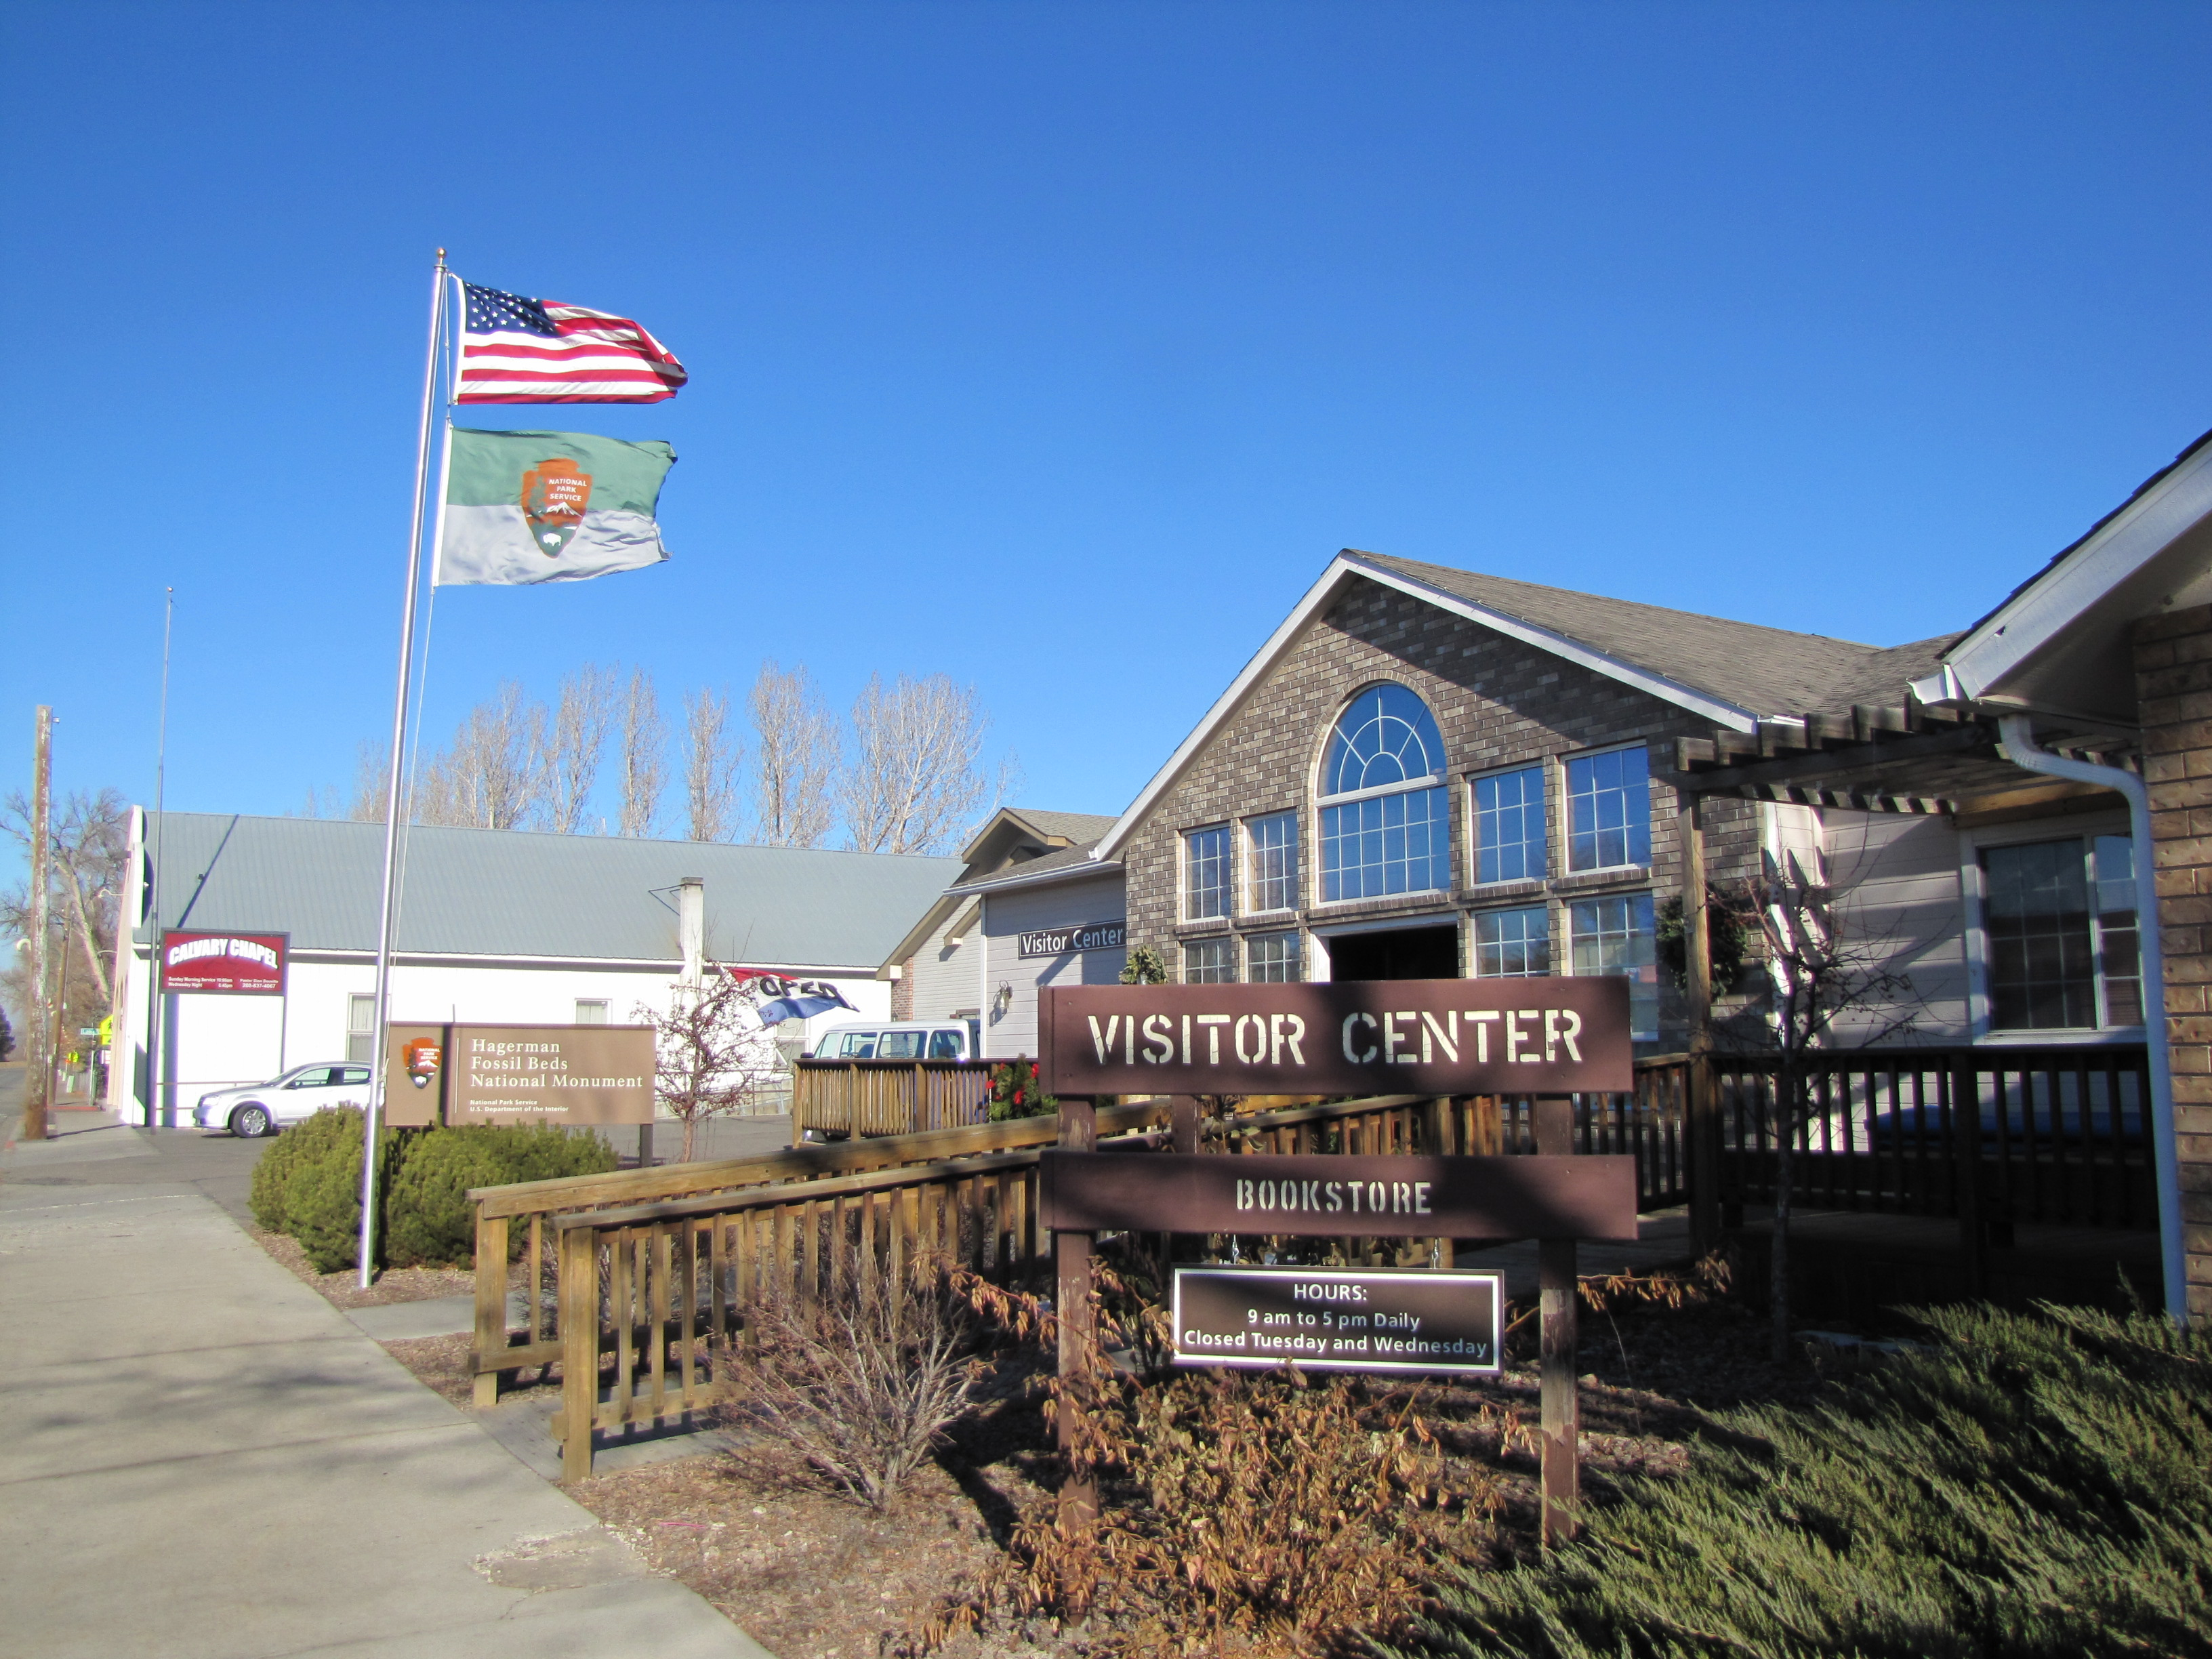 front of the visitor center building with signage and flags